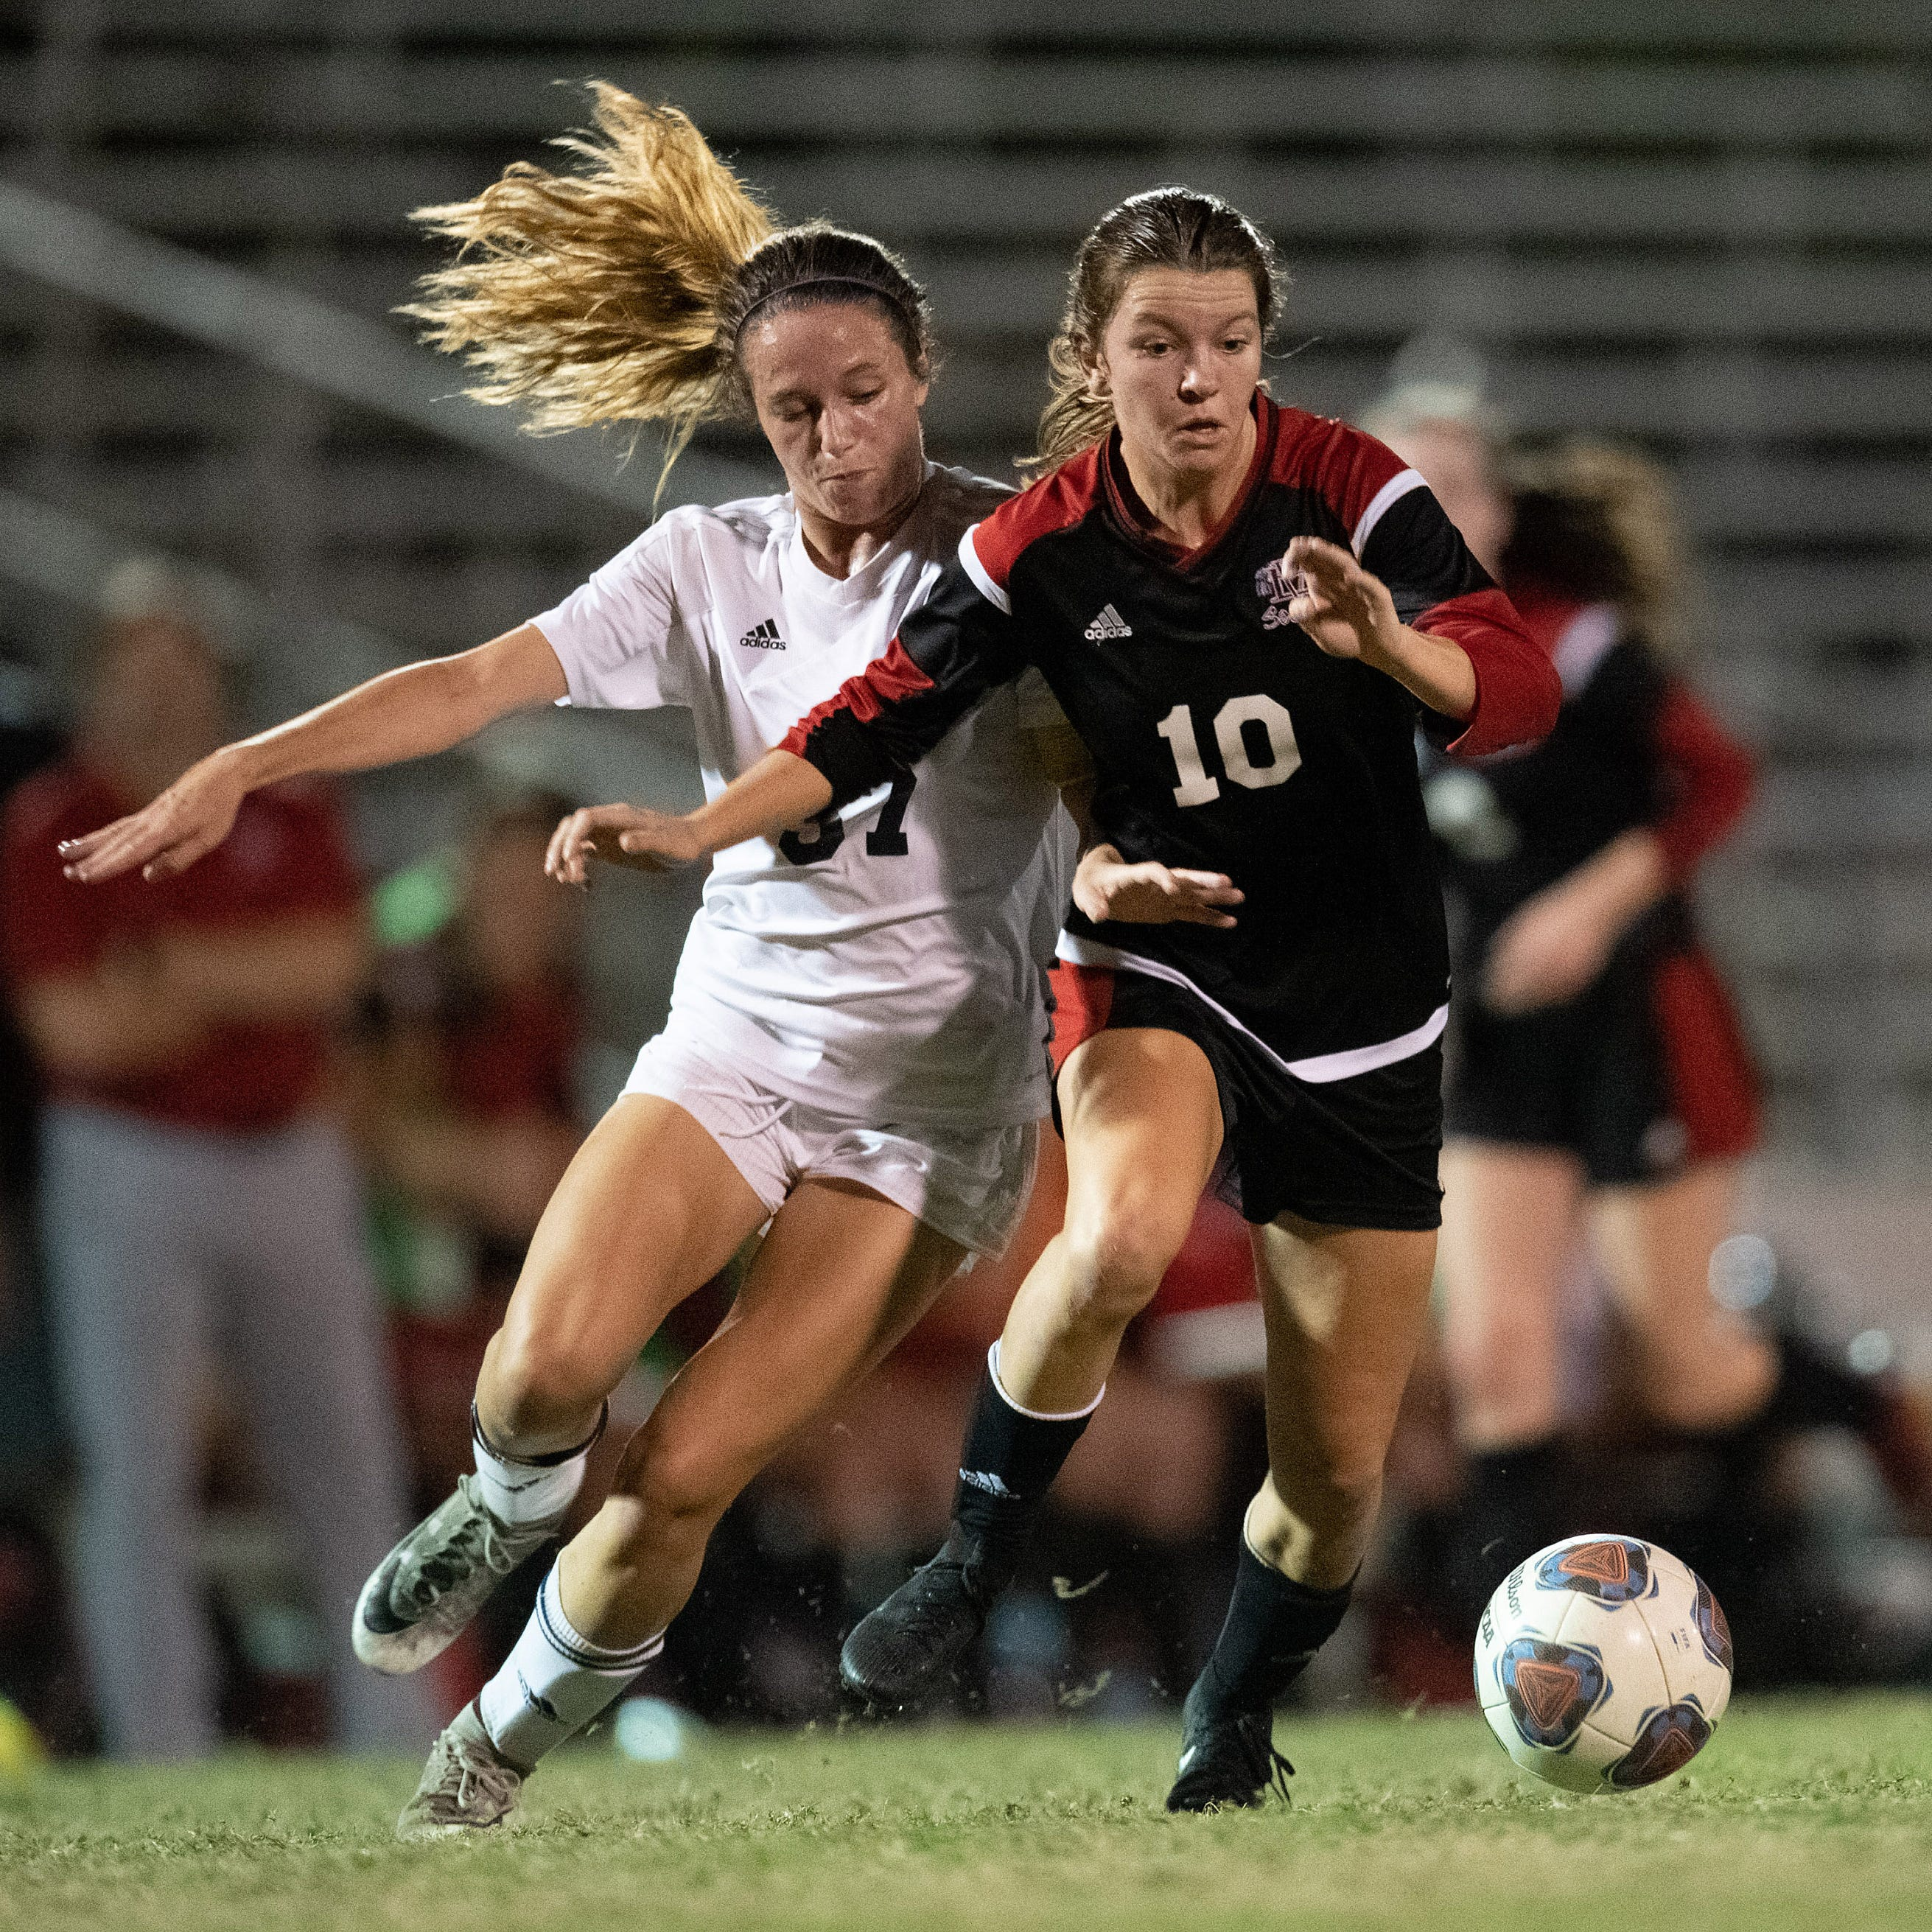 Vero Beach girls soccer team punches ticket to Final Four